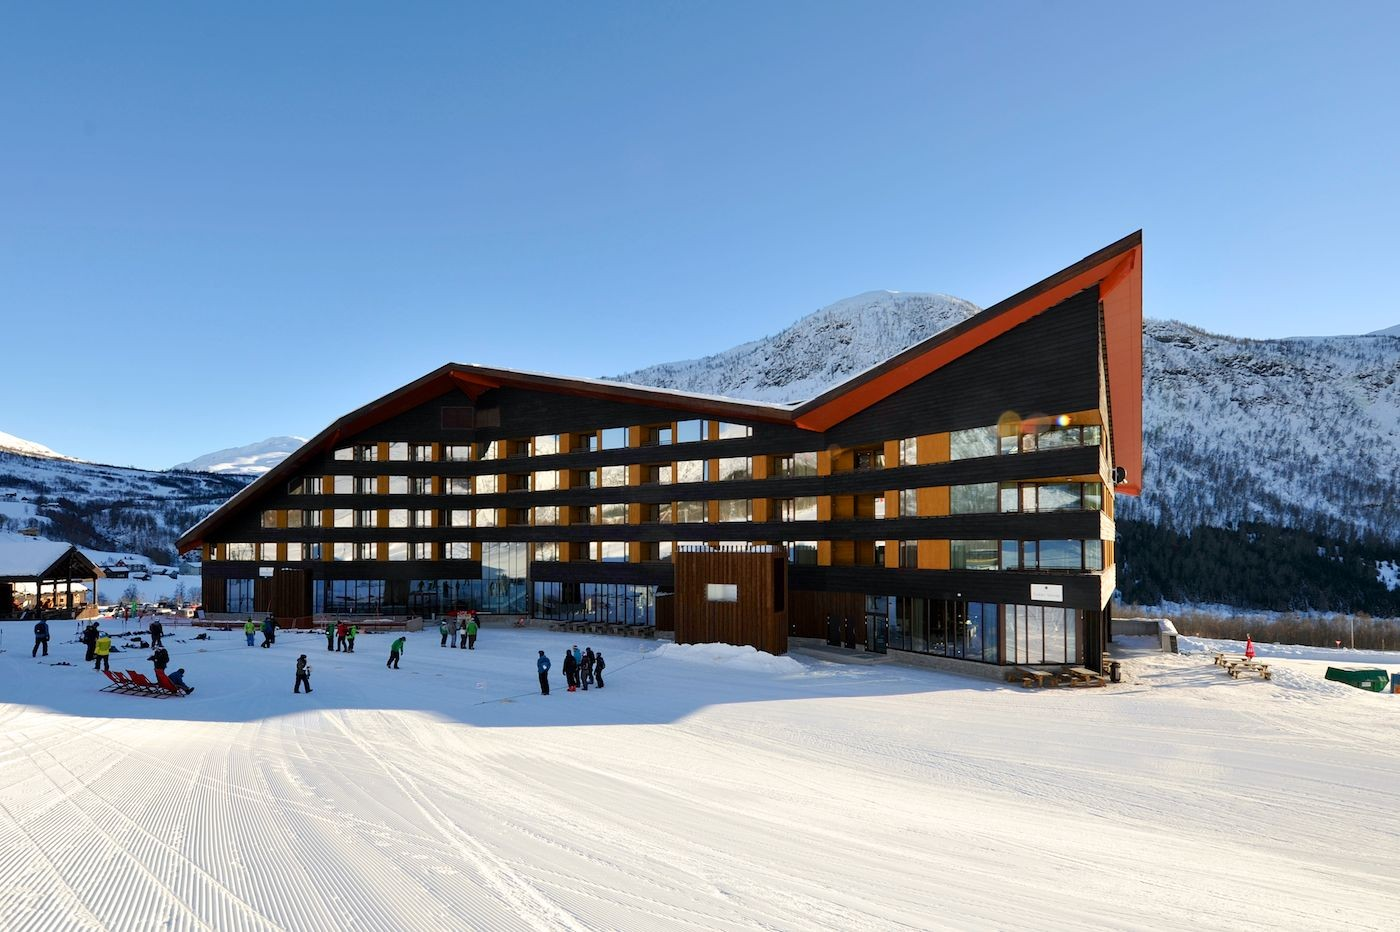 Myrkdalen hotel jva archdaily for Architecture hotel